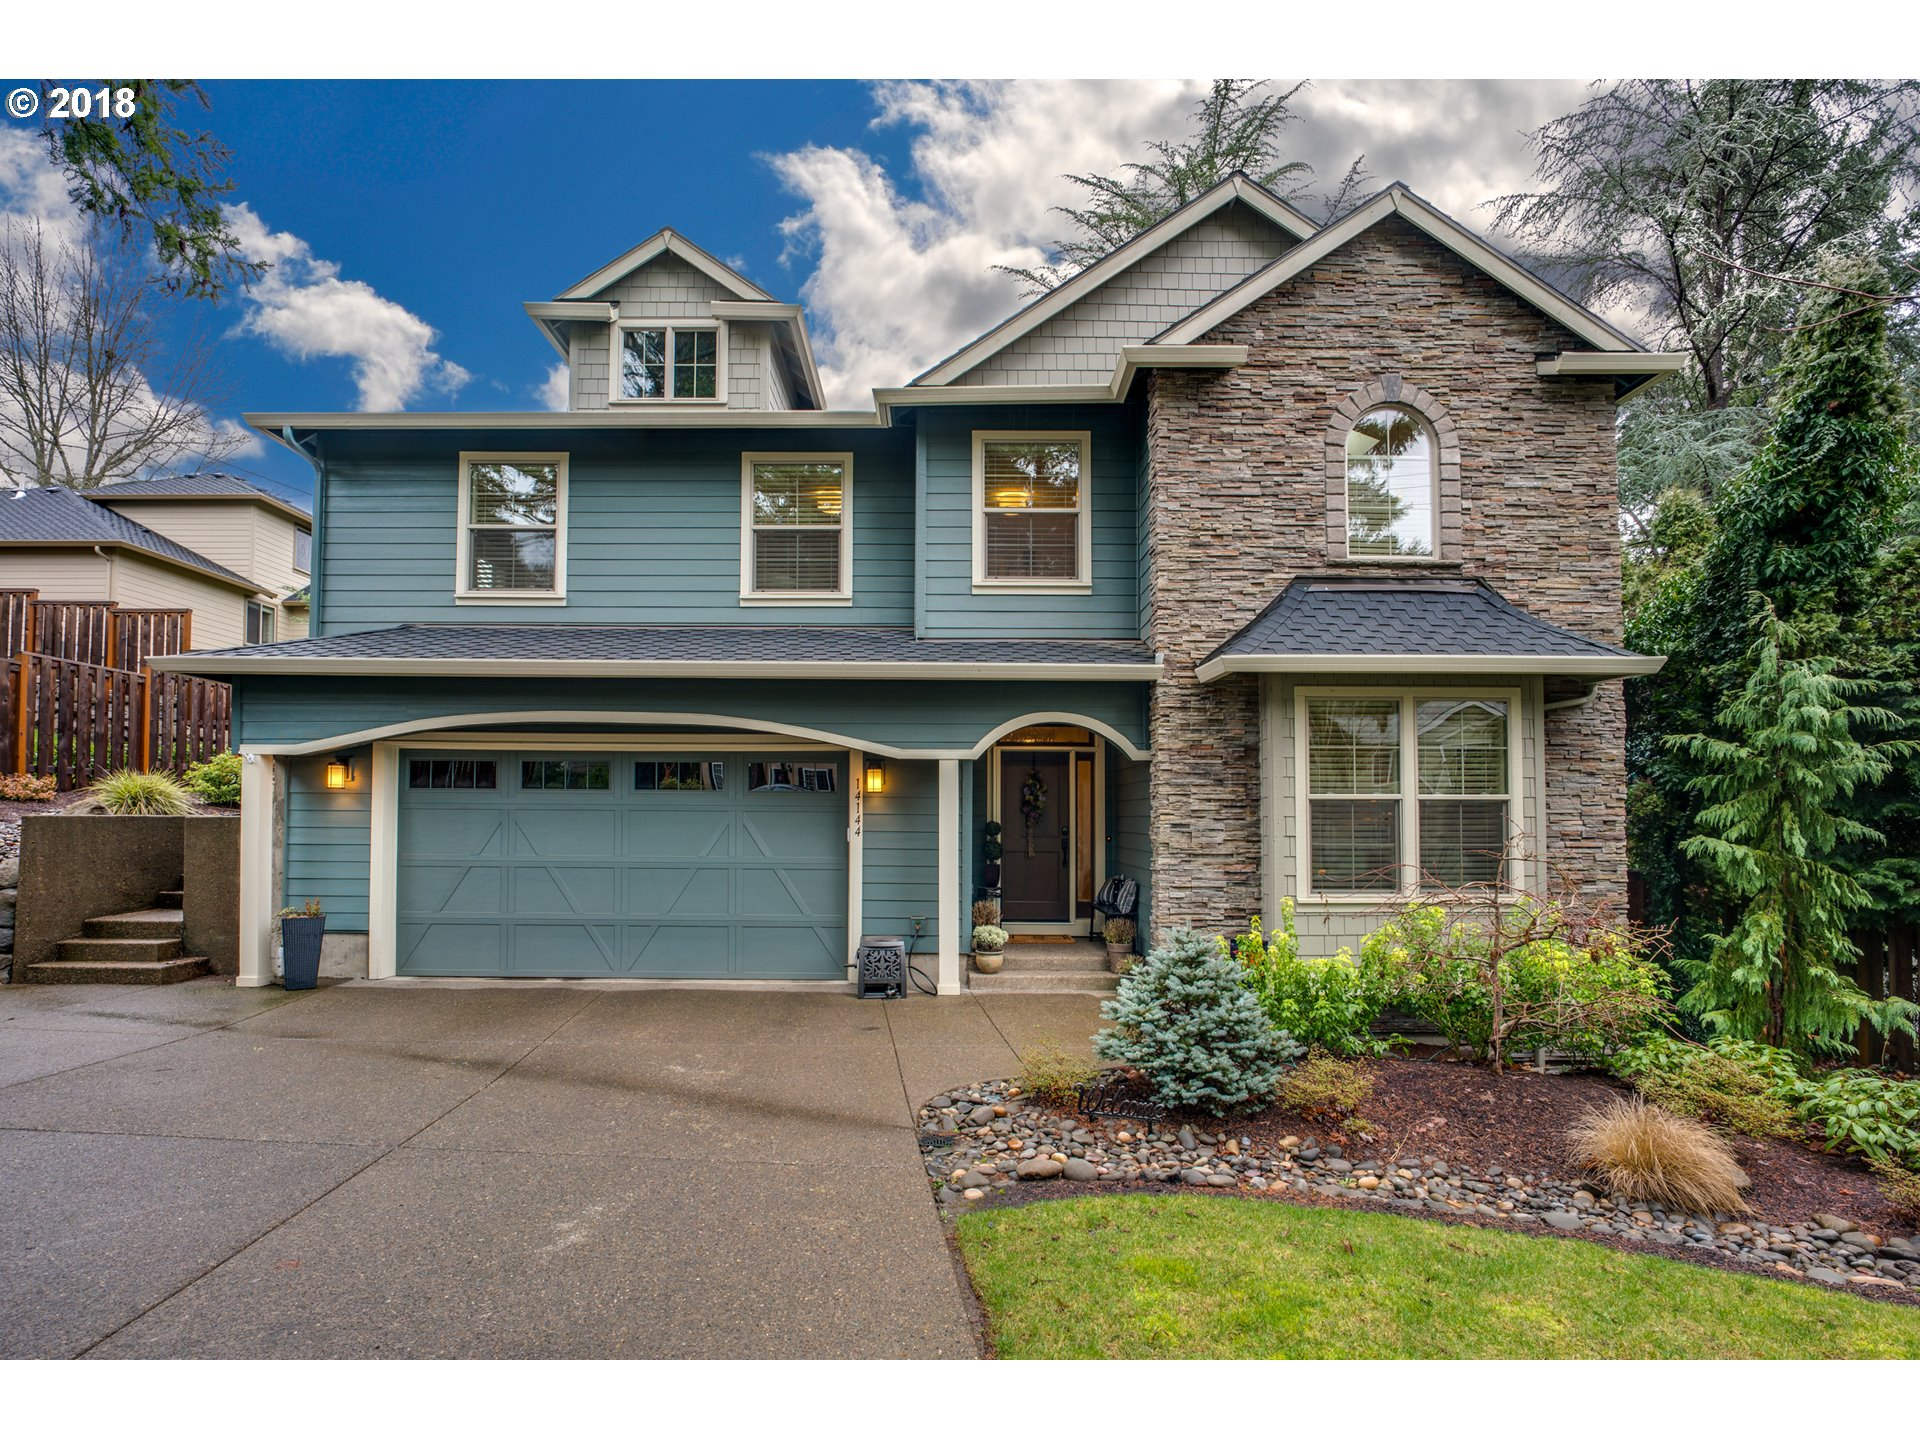 14144 GOODALL RD, Lake Oswego, OR 97034